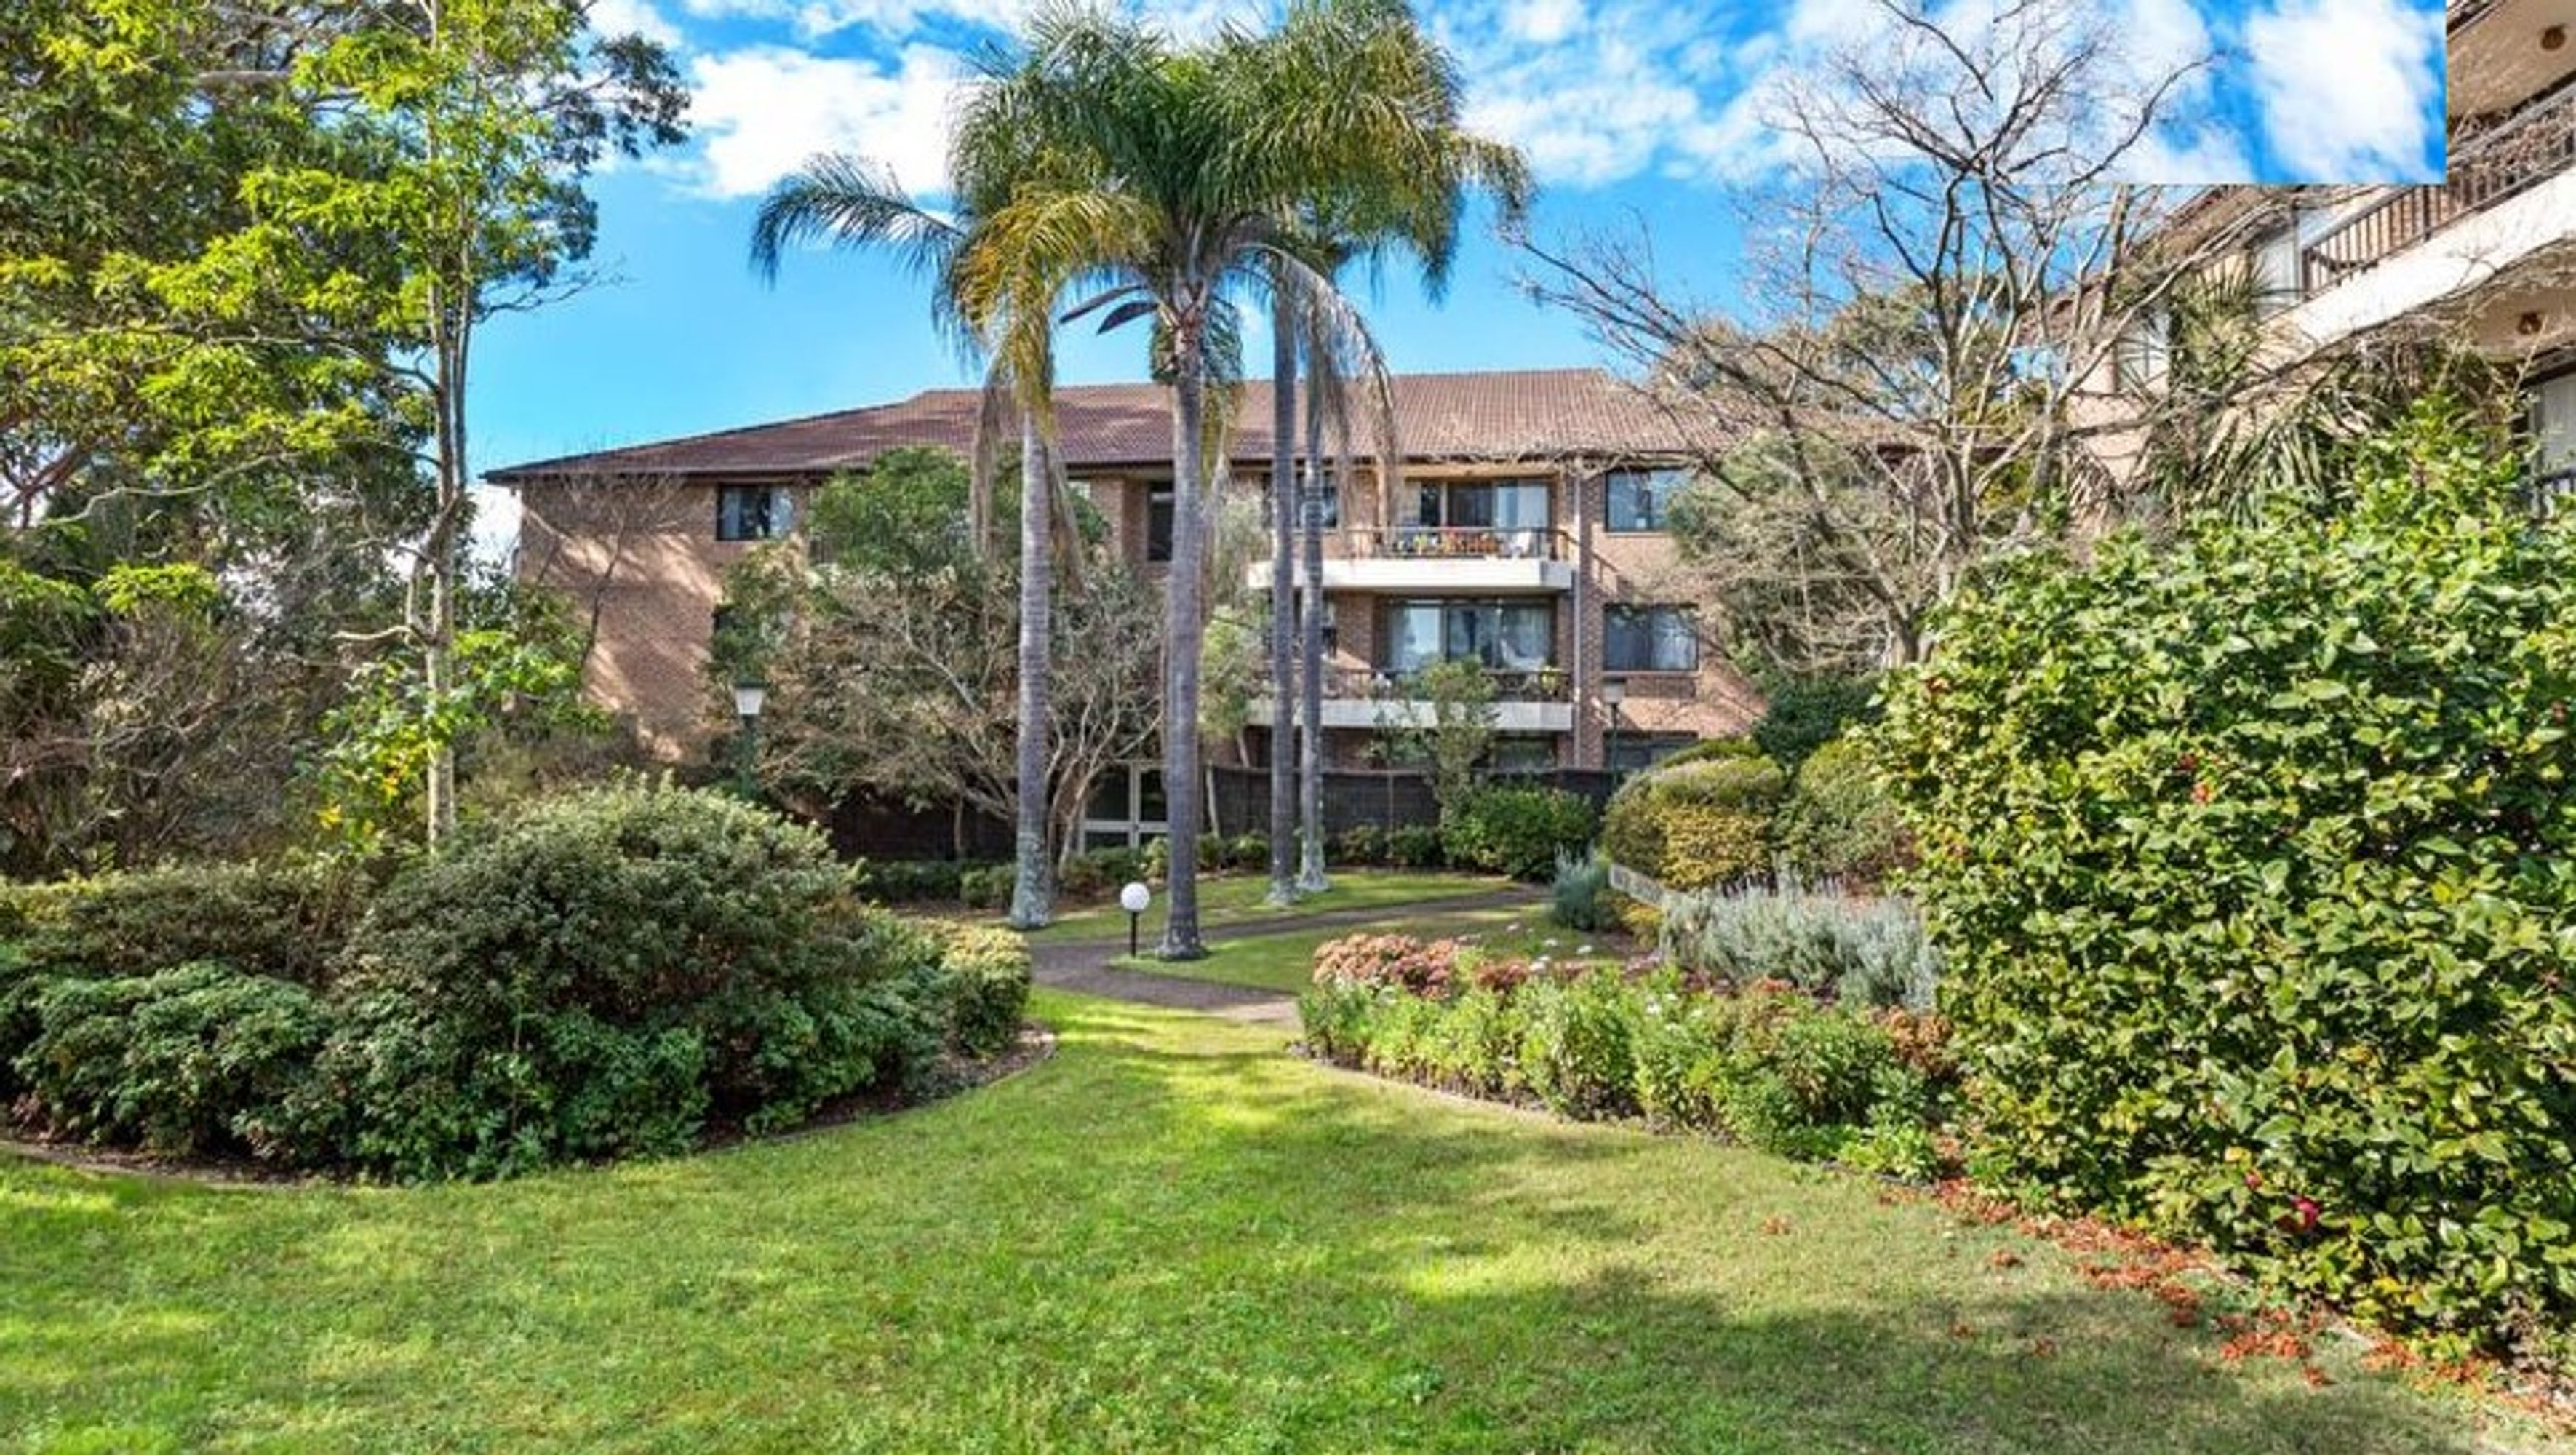 20/37-41 Carlingford Road, Epping, NSW 2121